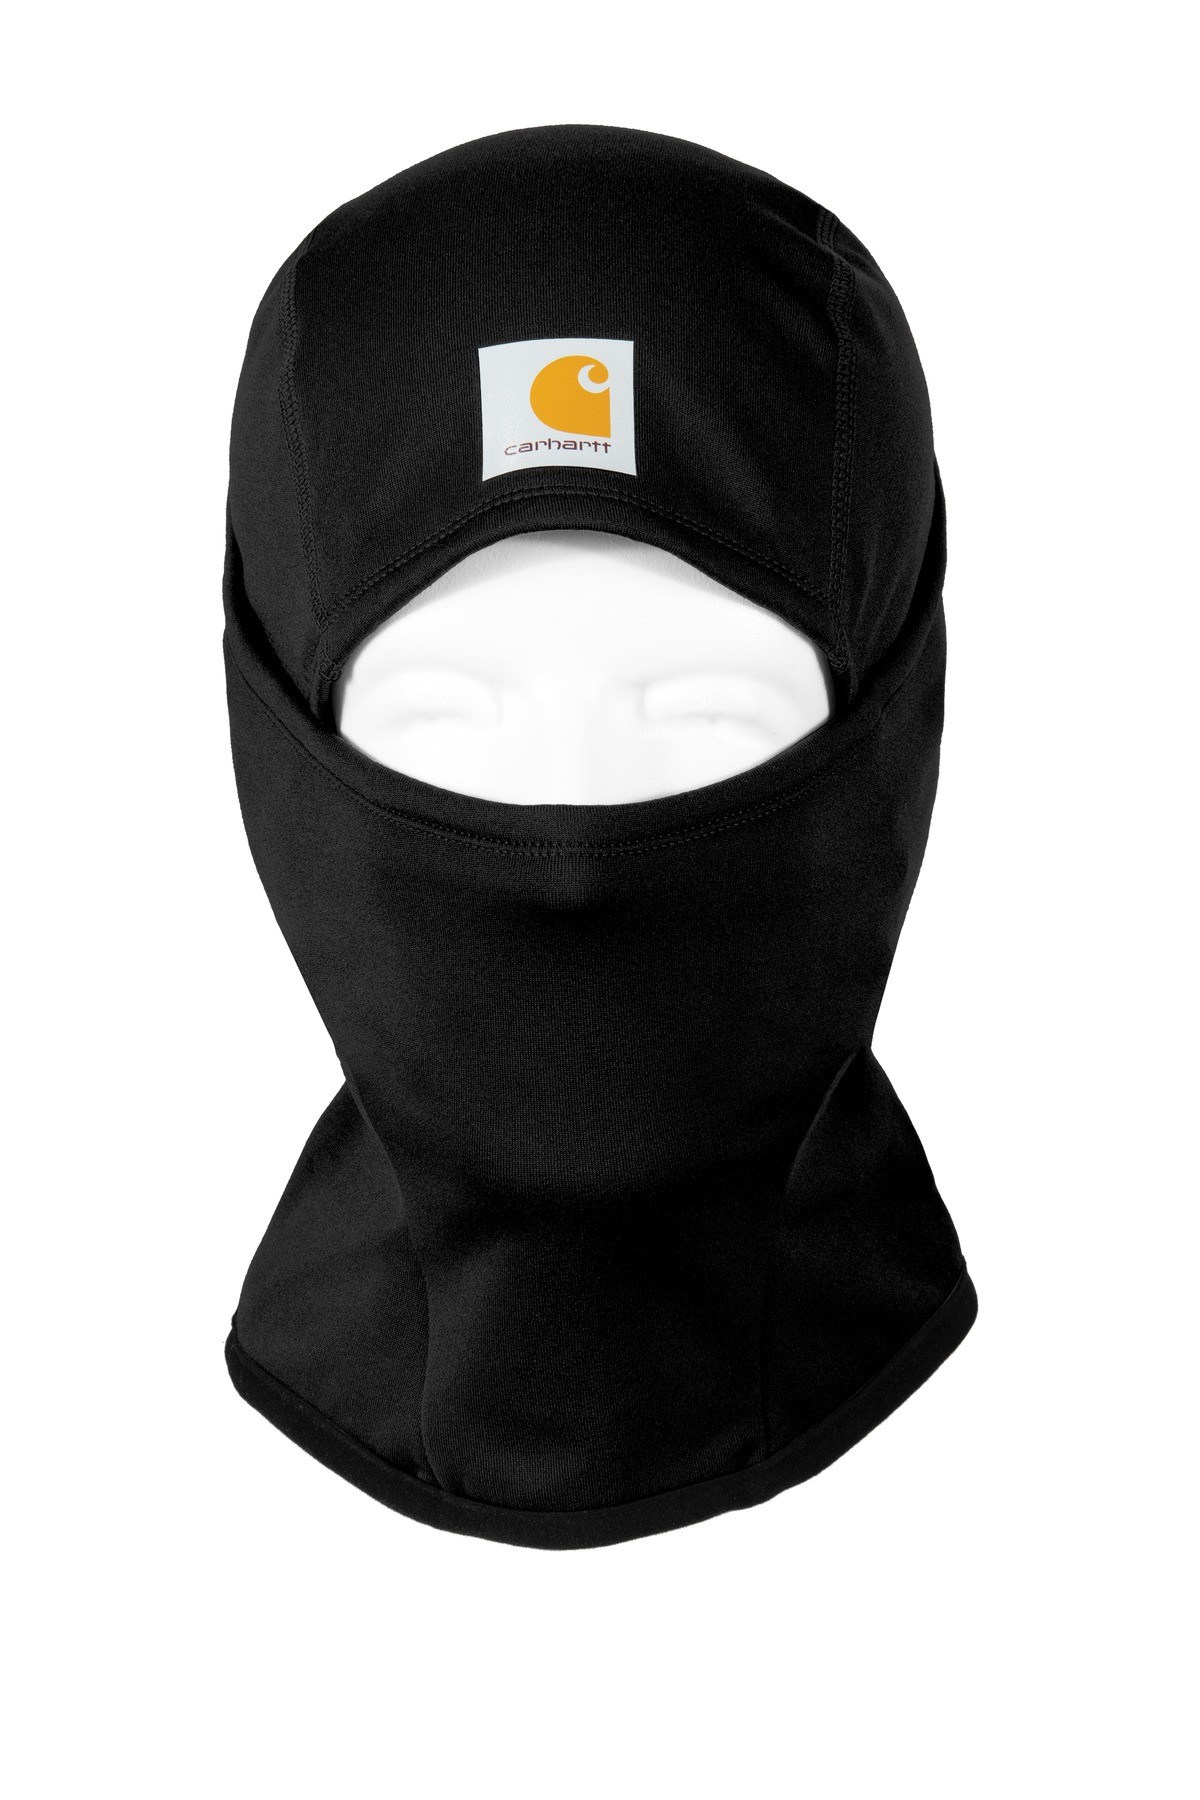 Carhartt Force ® Helmet-Liner Mask.